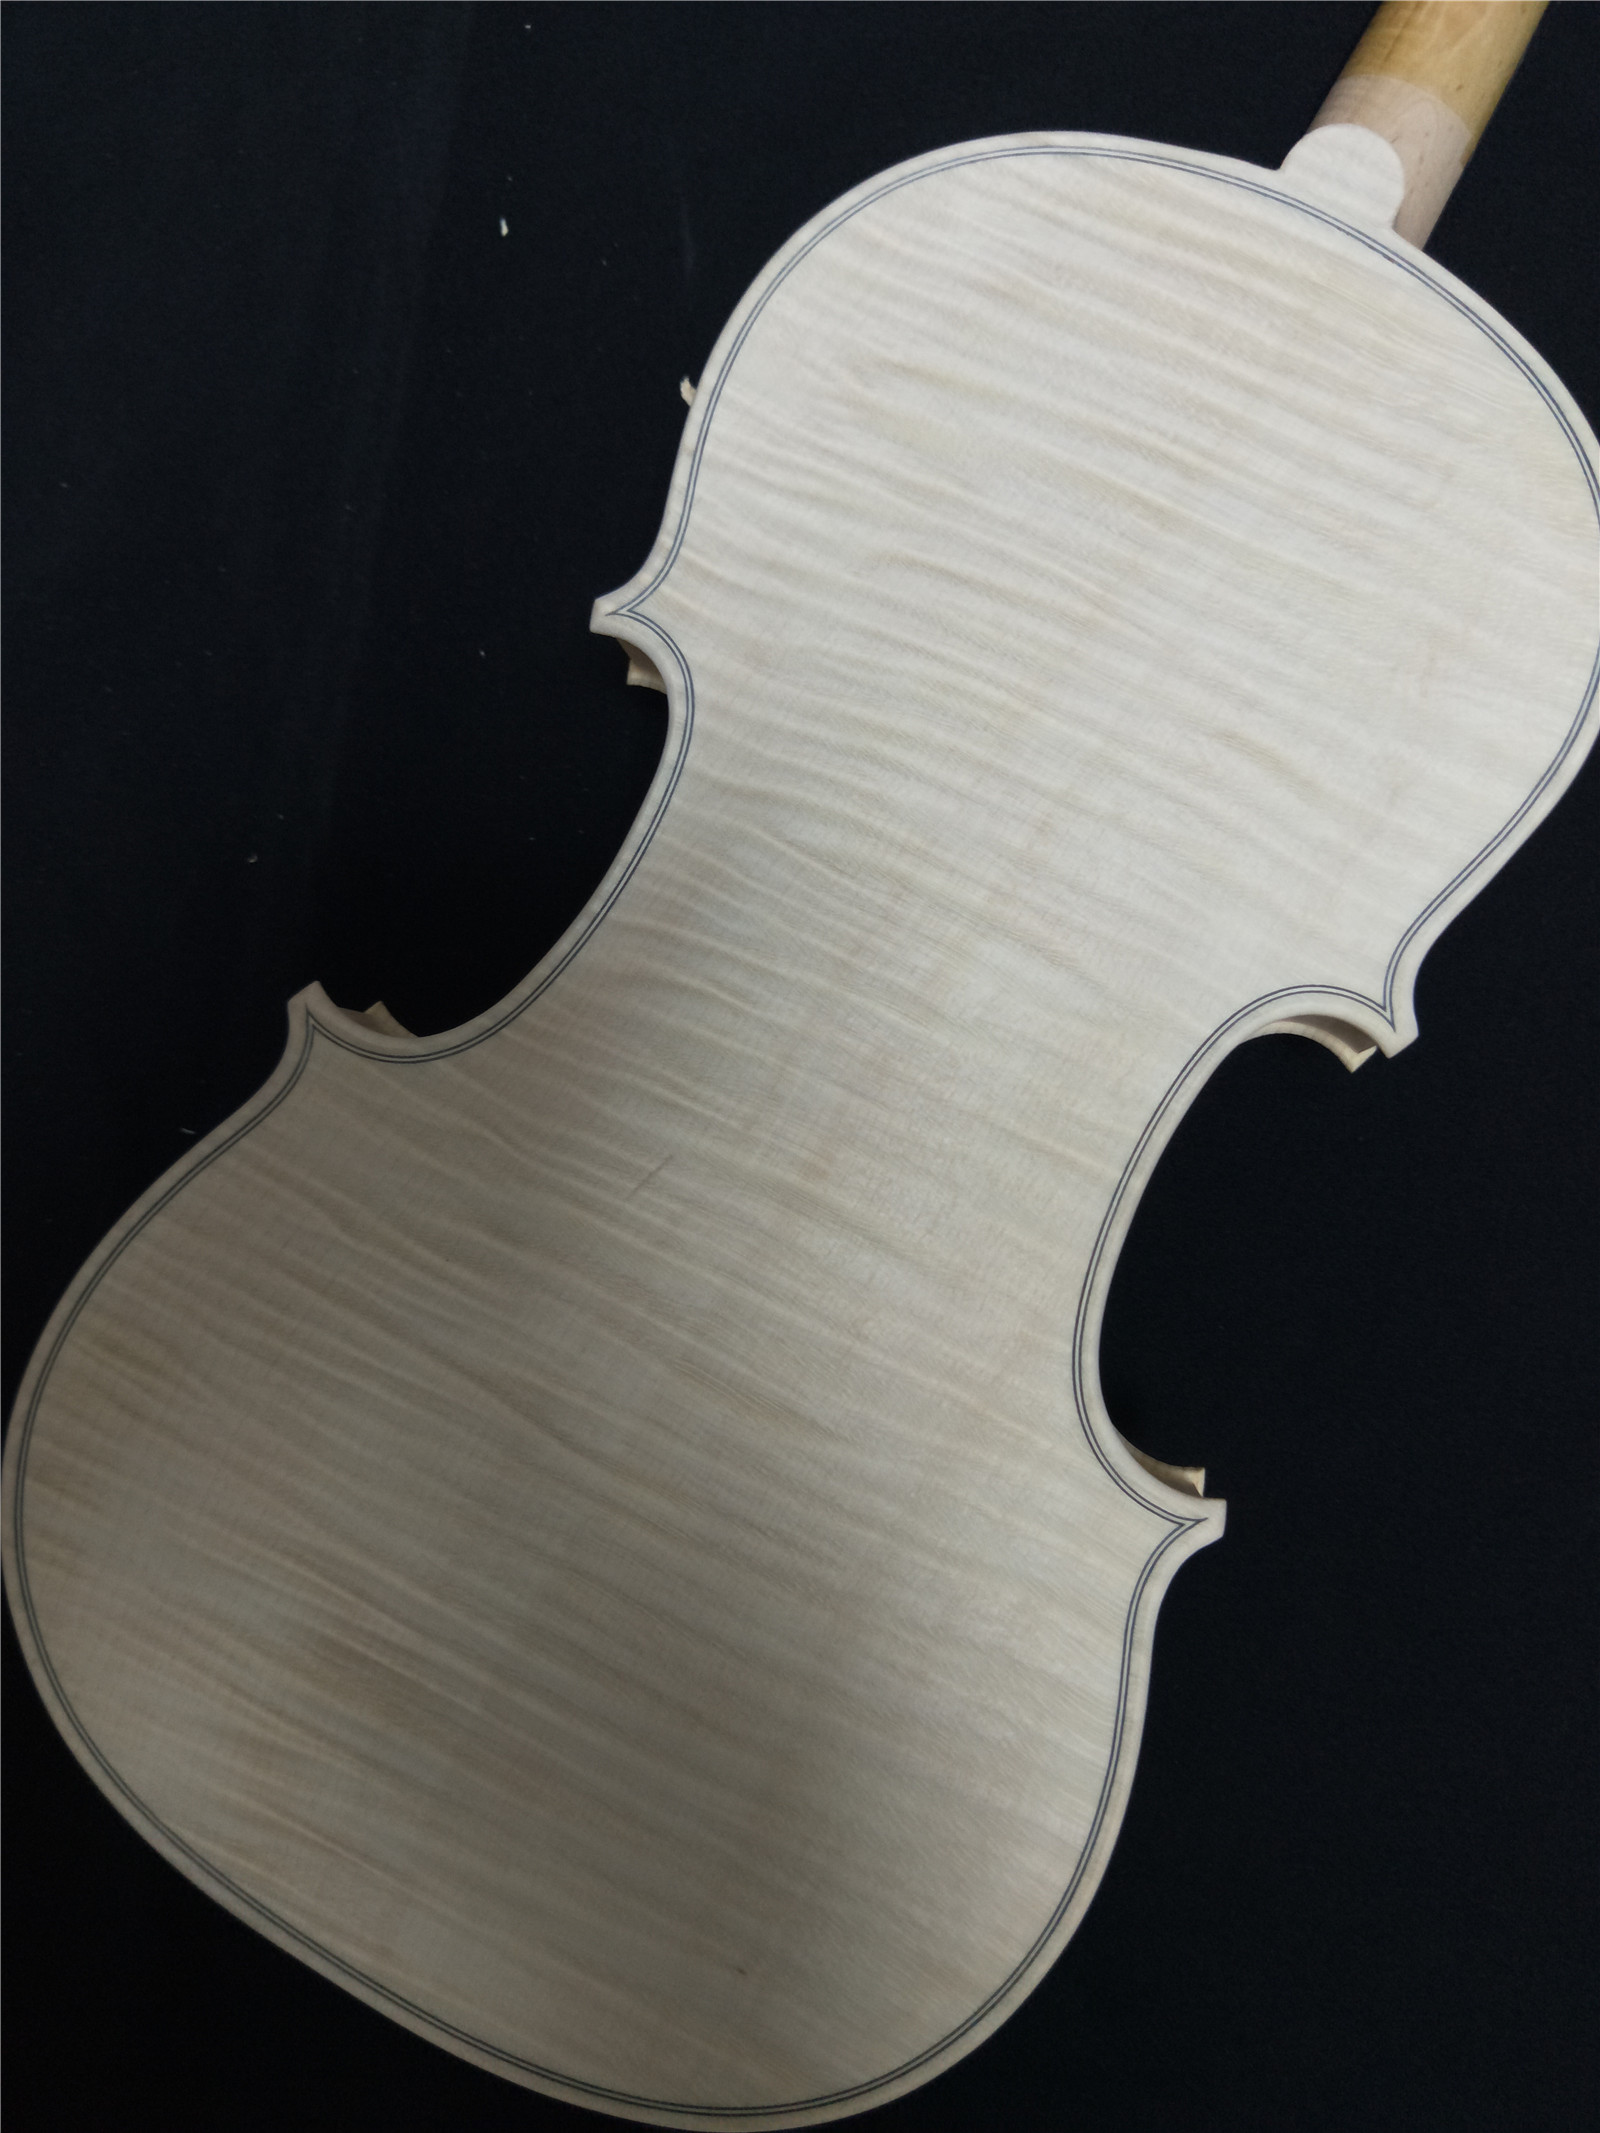 Free Shipping Hand Make White Violin 4/4 with One Whole Piece Back Nice Wood Grains Spruce Top Quality Unfinished Violin austrian spruce ch j b collion mezin copy french master violin no 1408 nice sound antique violin100% handmade